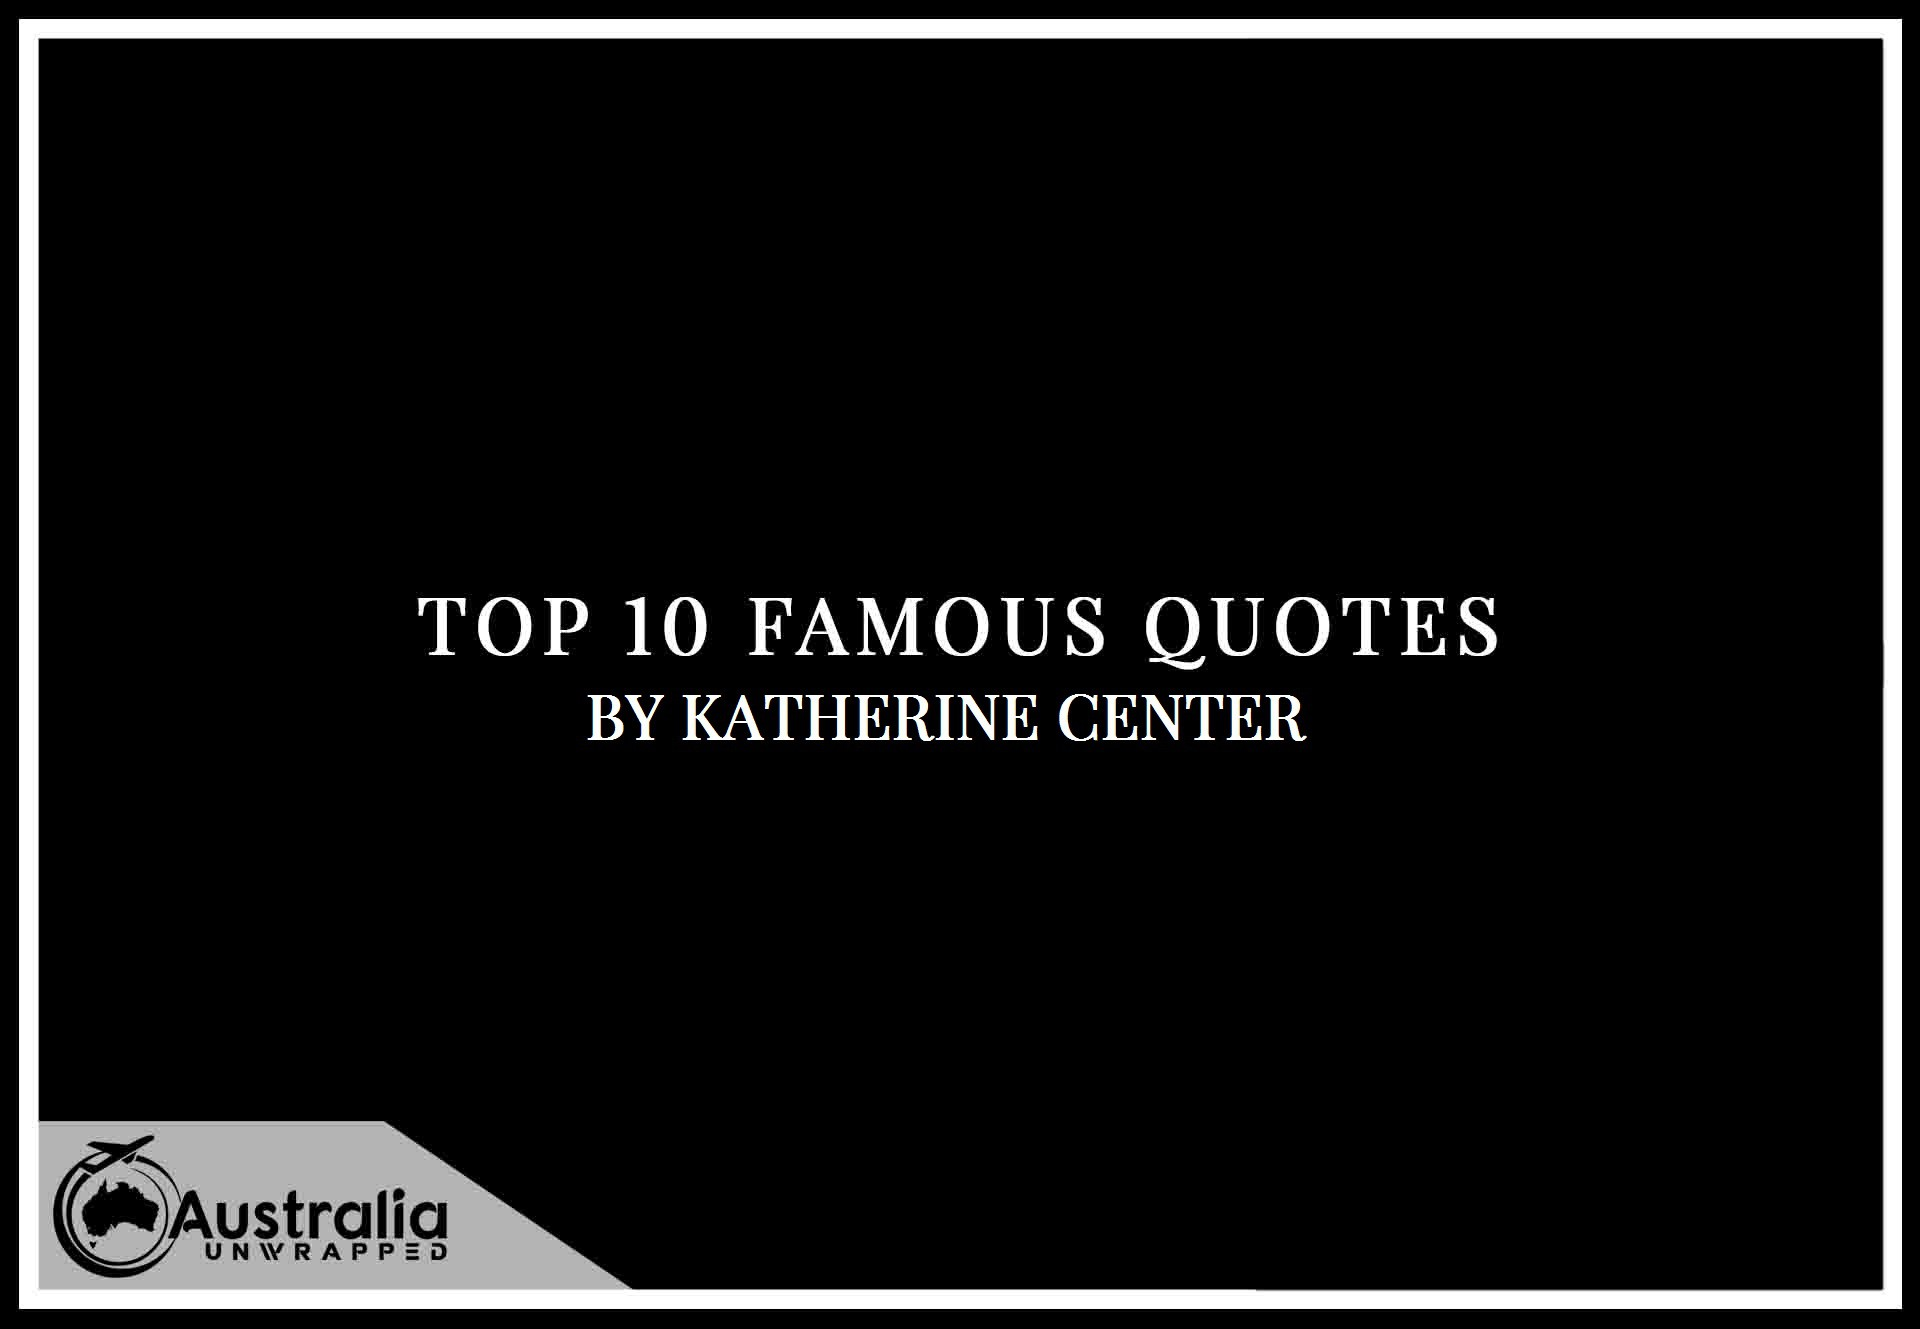 Katherine Center's Top 10 Popular and Famous Quotes